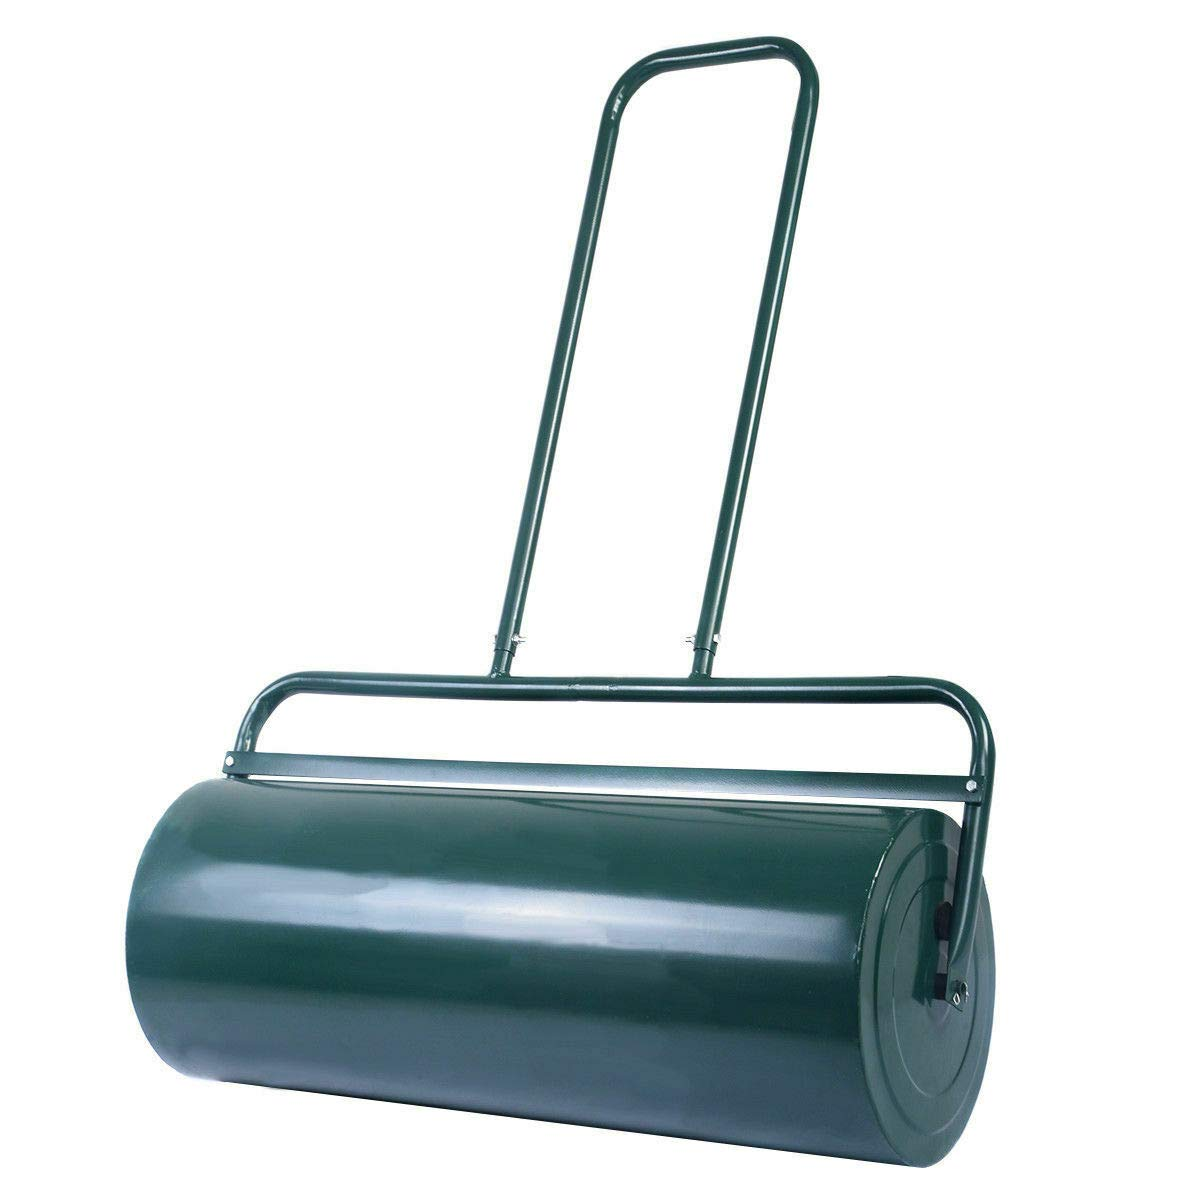 MAREEYA SHOP Tow Lawn Roller Water Filled Poly Push Roller 24-Inch x 13-Inch Green